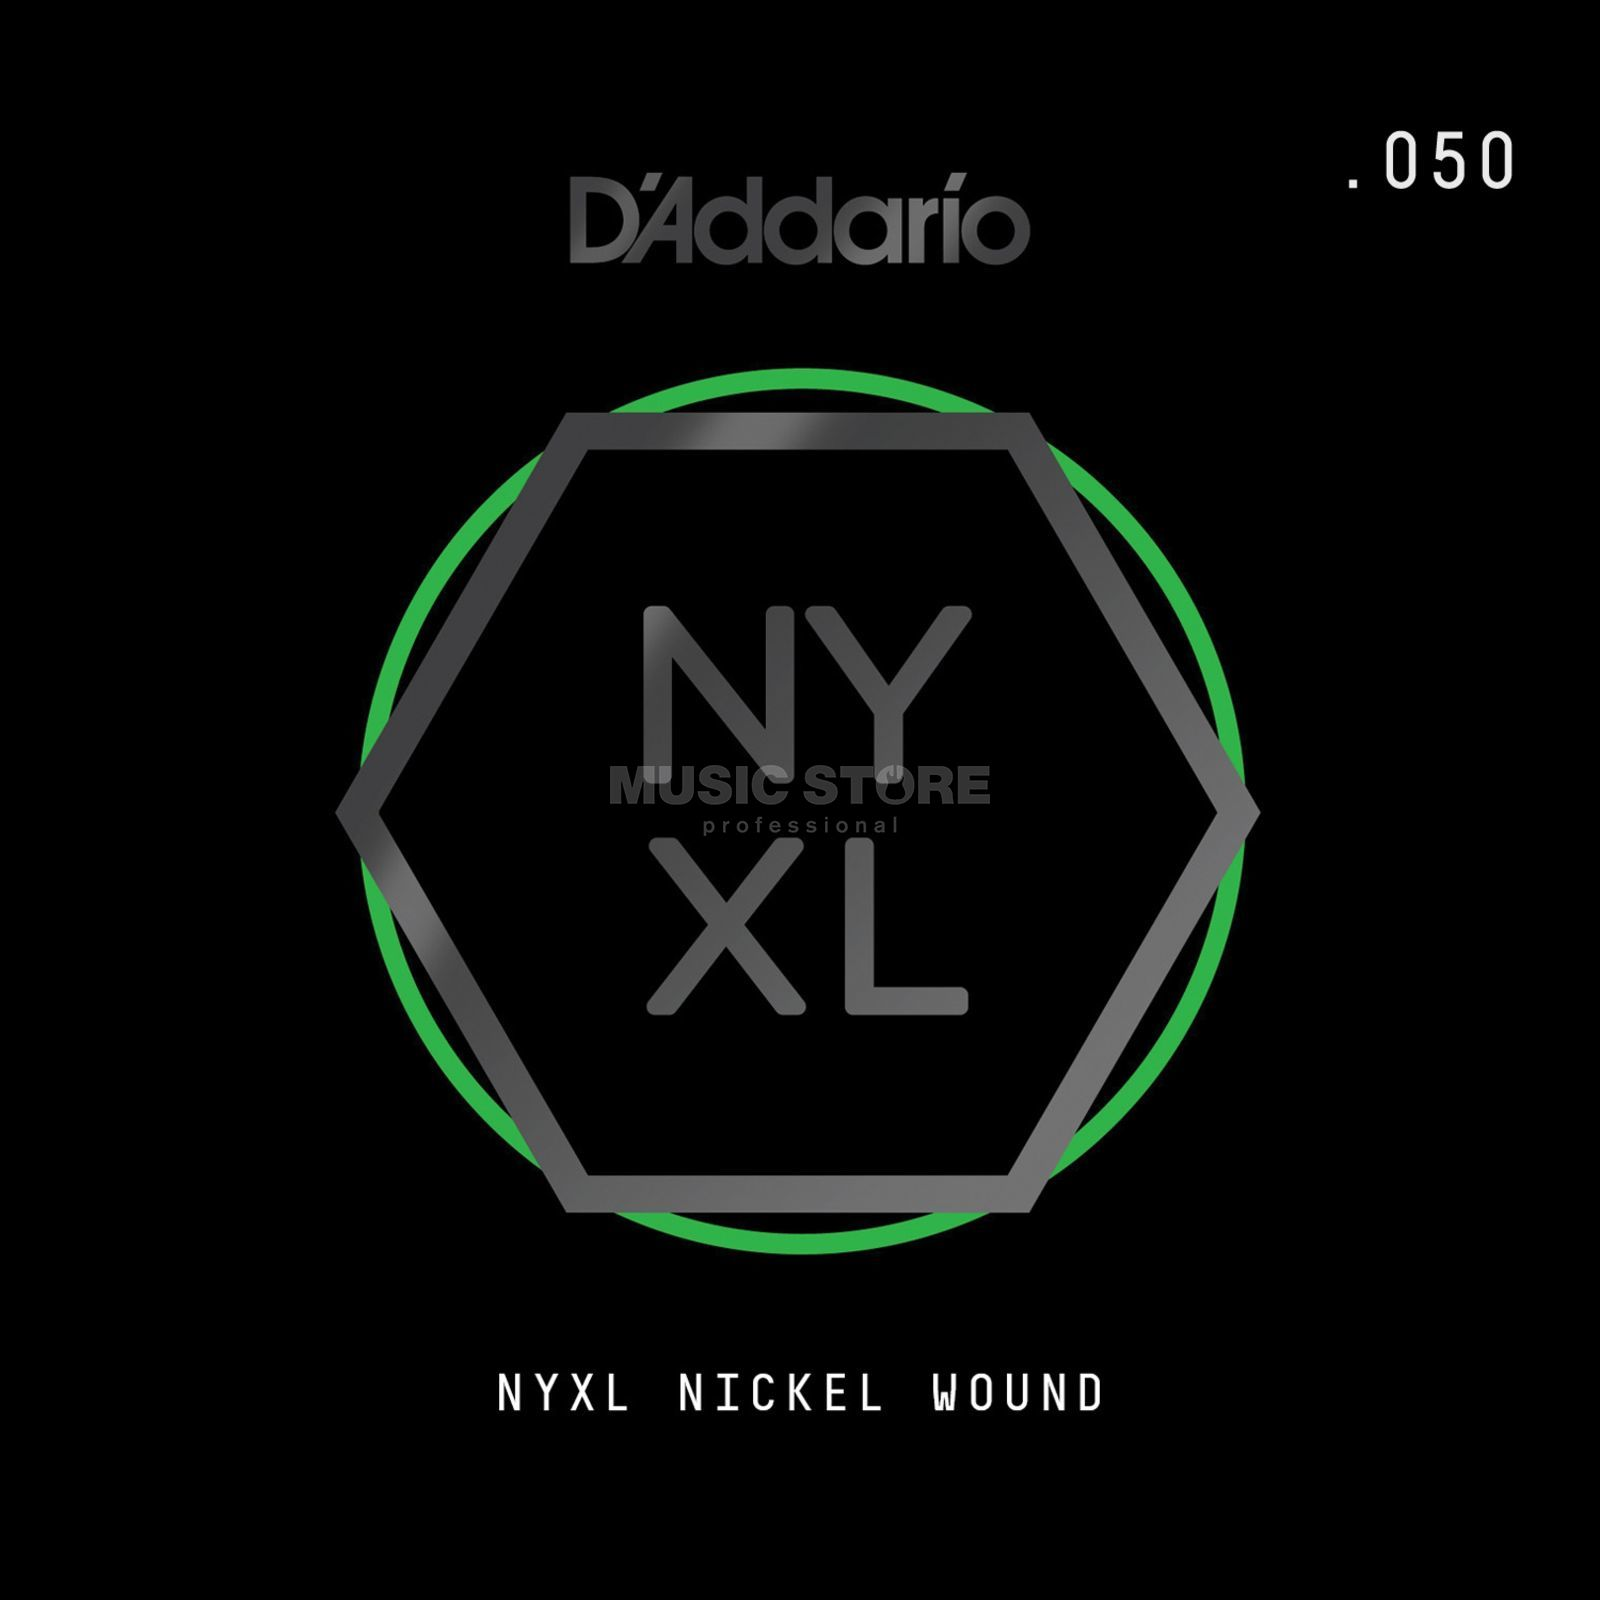 D'Addario NYNW050 Single String Nickel Wound Immagine prodotto